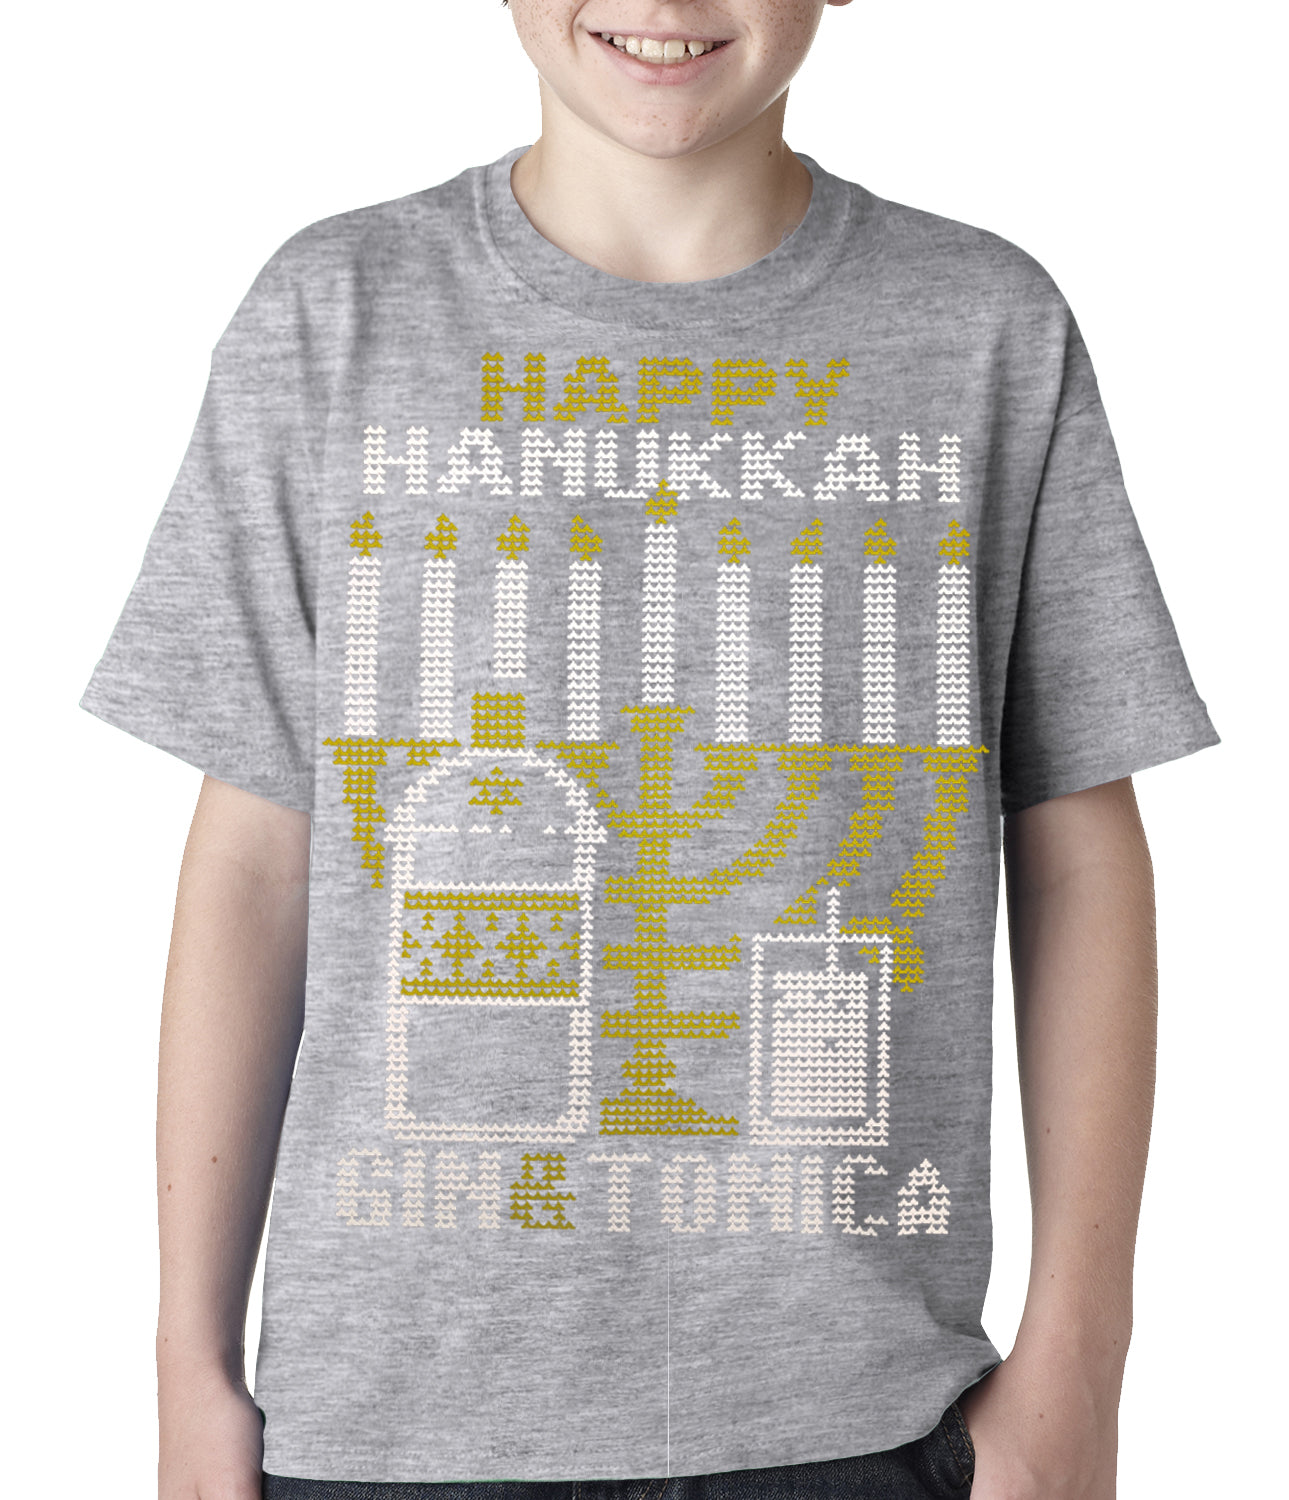 Ugly Hanukkah Tee - Gin and Tonica Golden Menorah Ugly Hanukkah Kids T-shirt